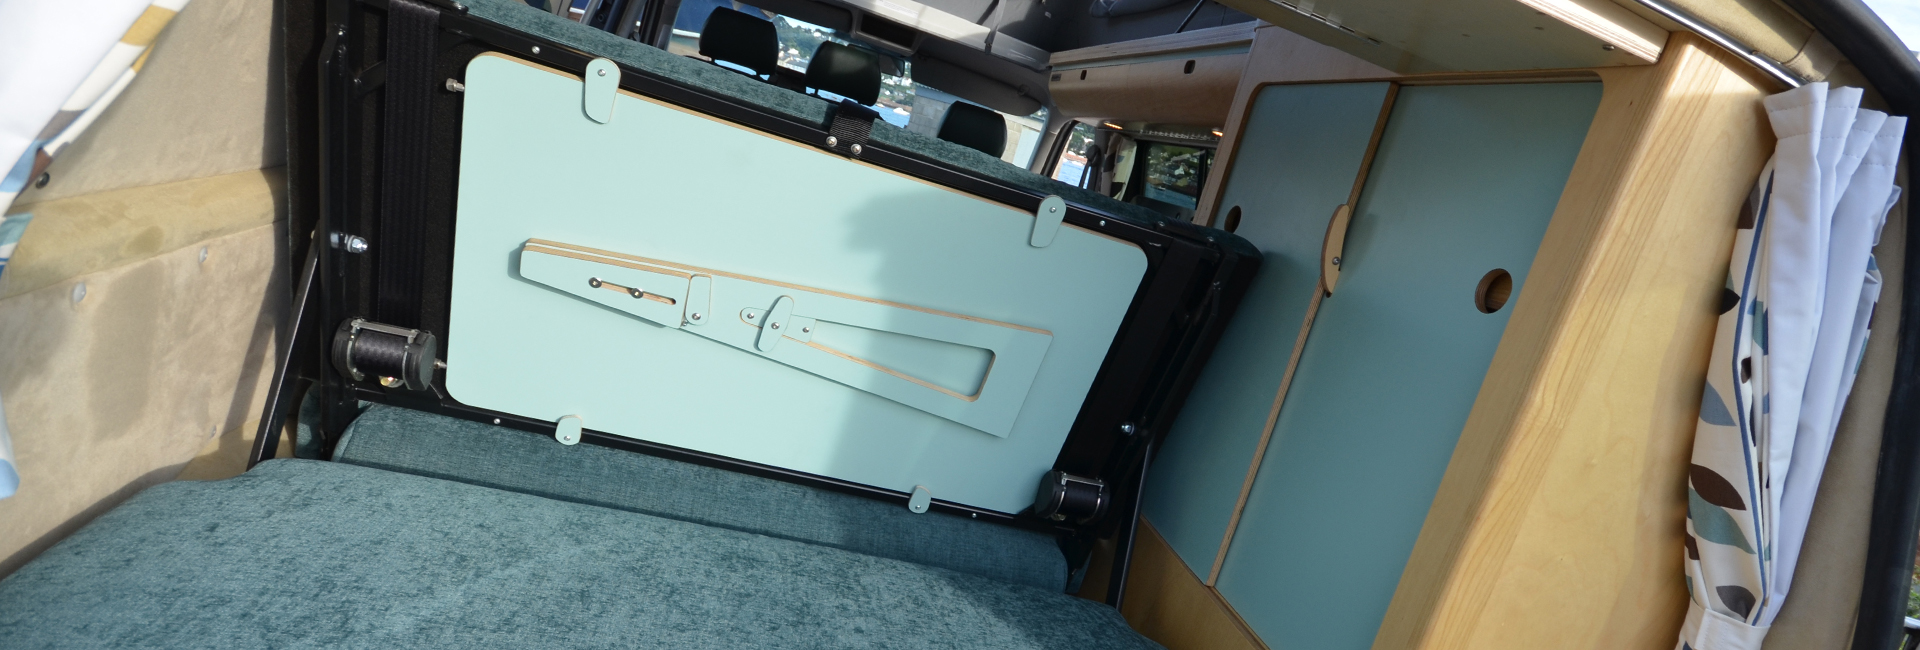 cool blue rear view of rock and roll bed and plywood wardrobes with clever fold away bespoke table stowed away in campervan